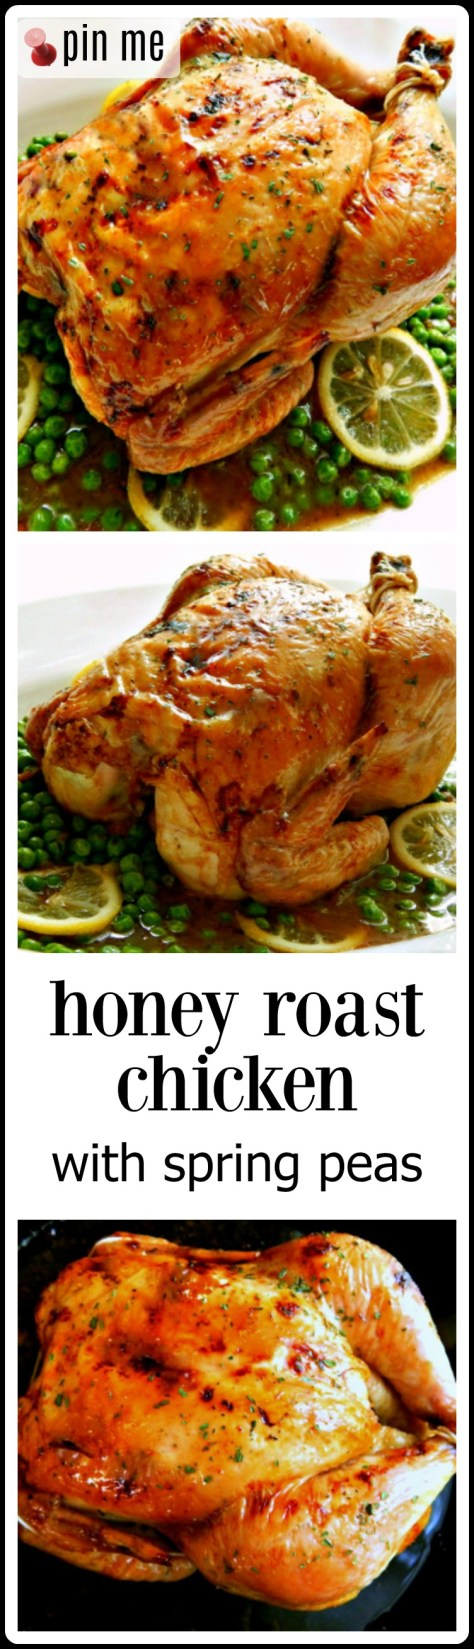 Honey Roast Chicken is marvelous! The chicken is moist, the skin is  golden, crunchy, chewy, sweet, and salty, crispy deliciousness. The meat juicy and flavorful, and the spring peas? Just the right touch. The resulting sauce? Heaven!